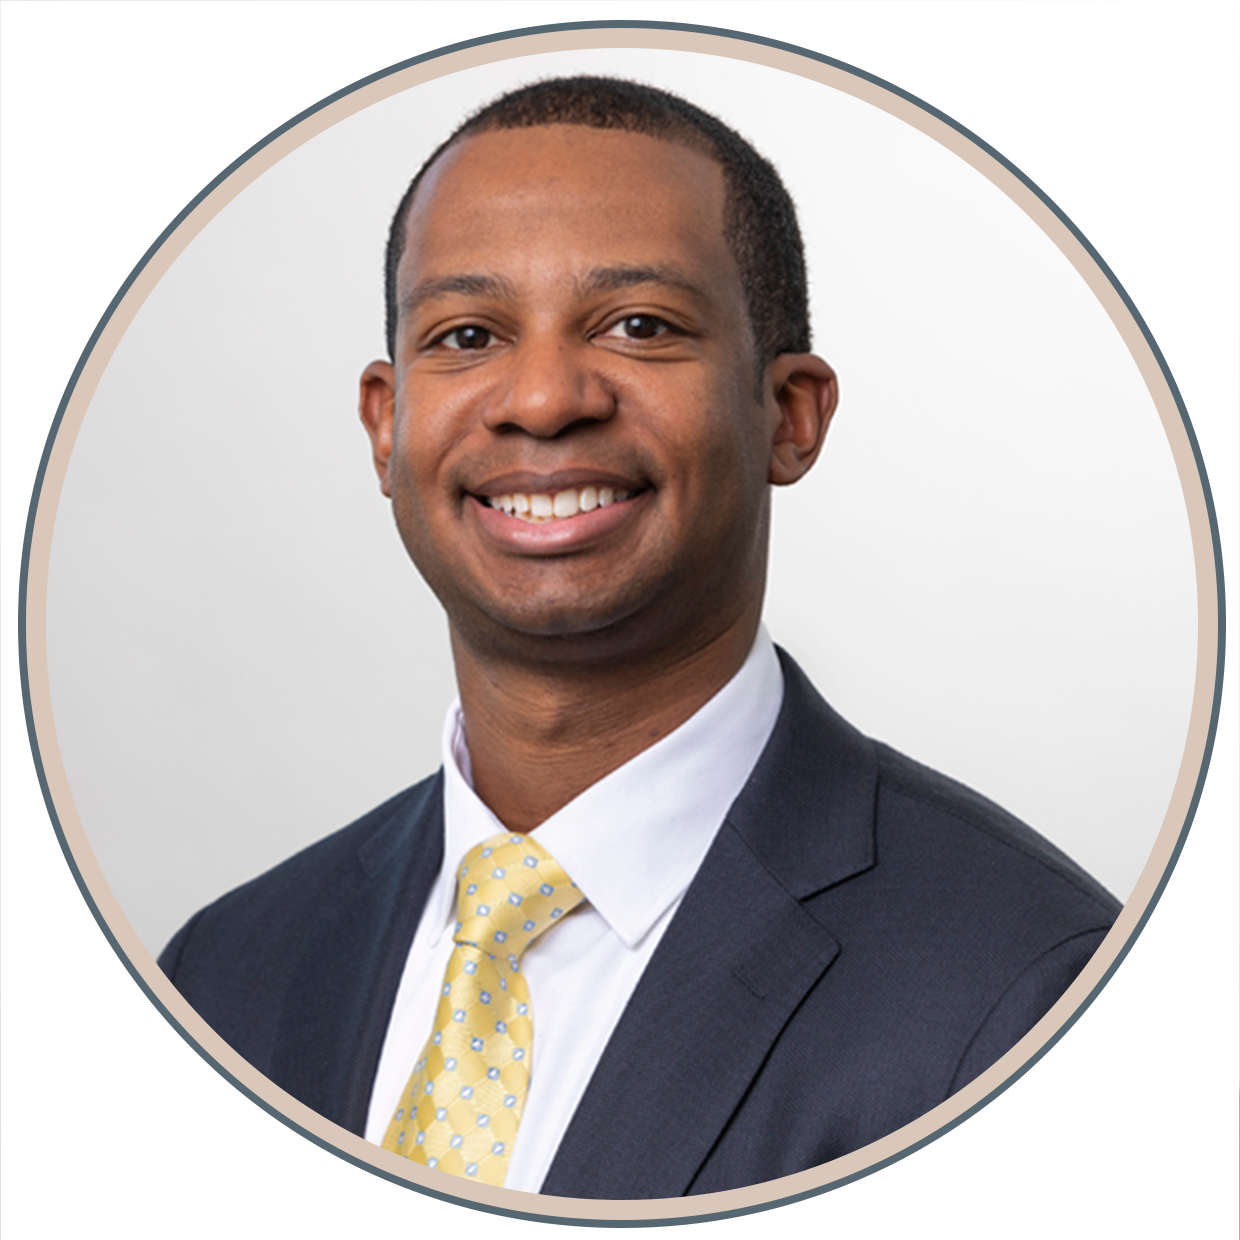 Terry is an Investment Operations Analyst for Johnson Financial Group.